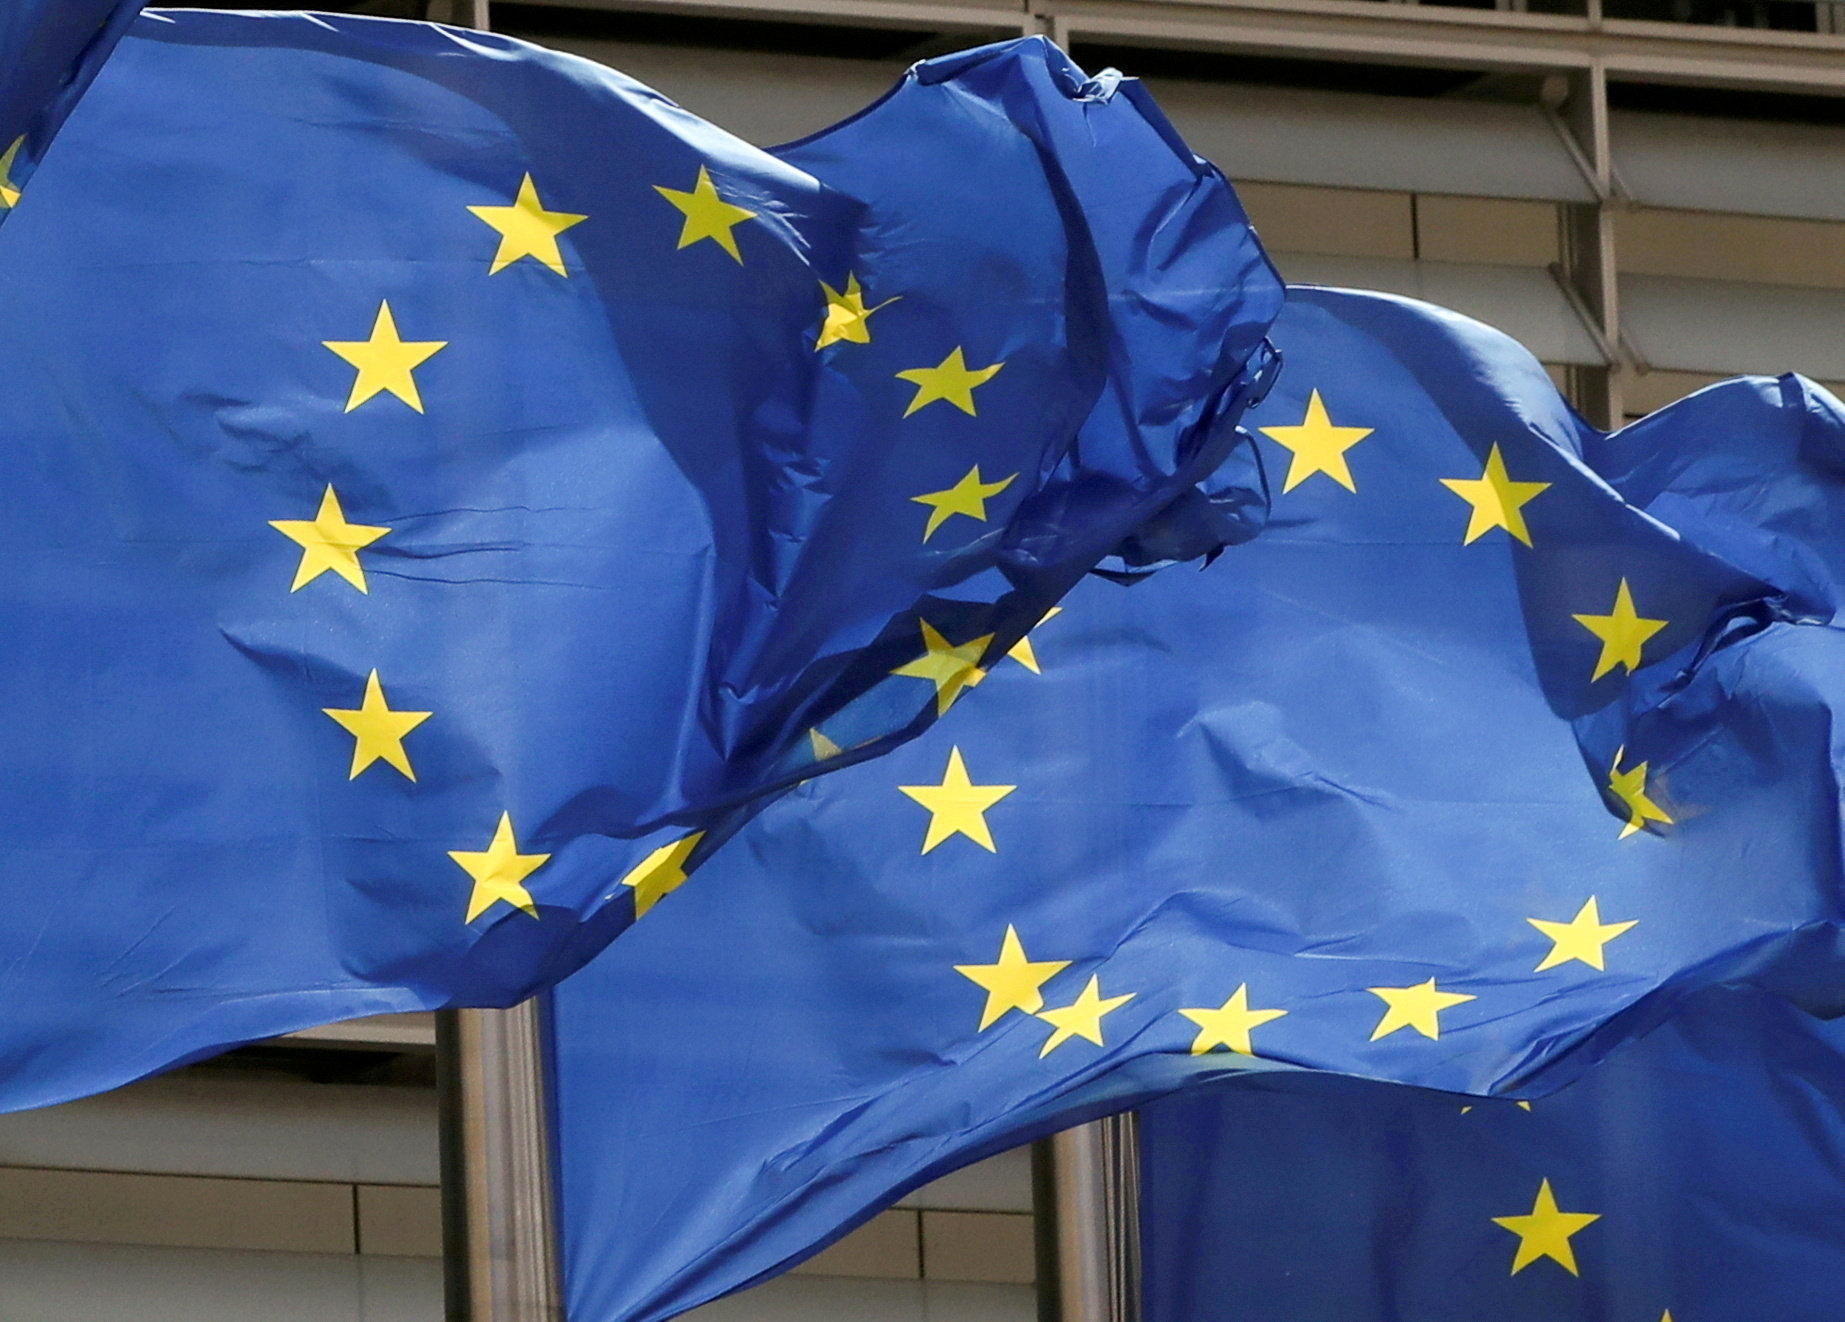 European Union flags flutter outside the EU Commission headquarters in Brussels, Belgium May 5, 2021. REUTERS/Yves Herman